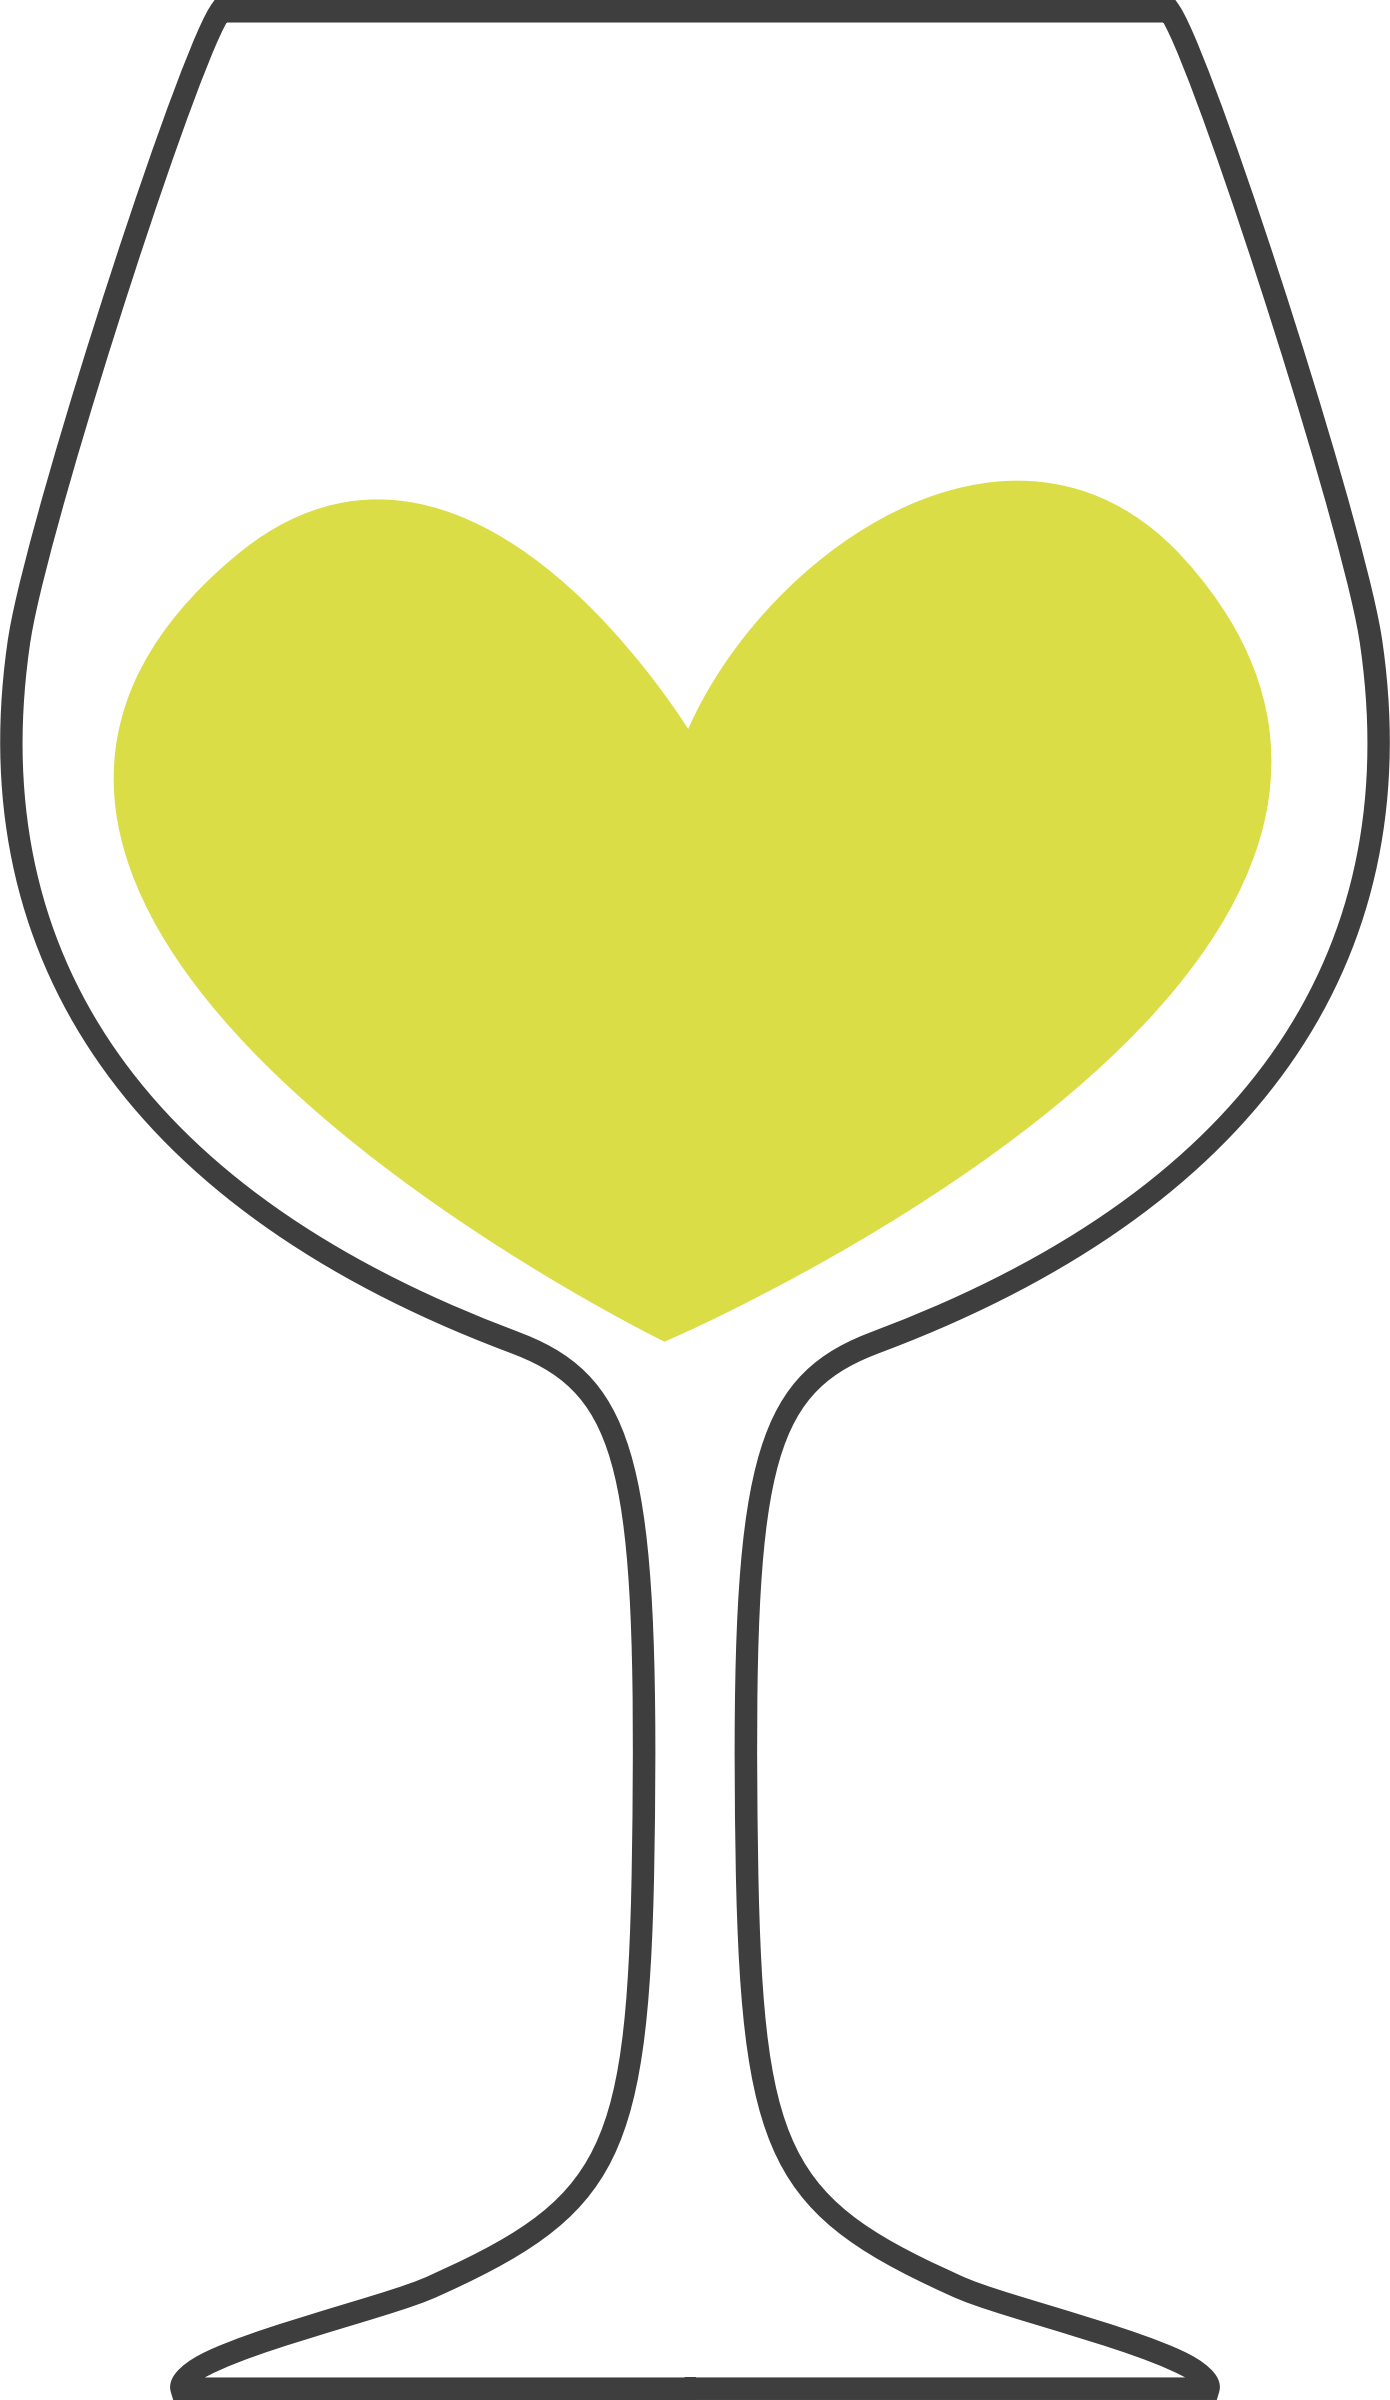 Wine heart clipart black and white stock Clipart - Love of white wine black and white stock